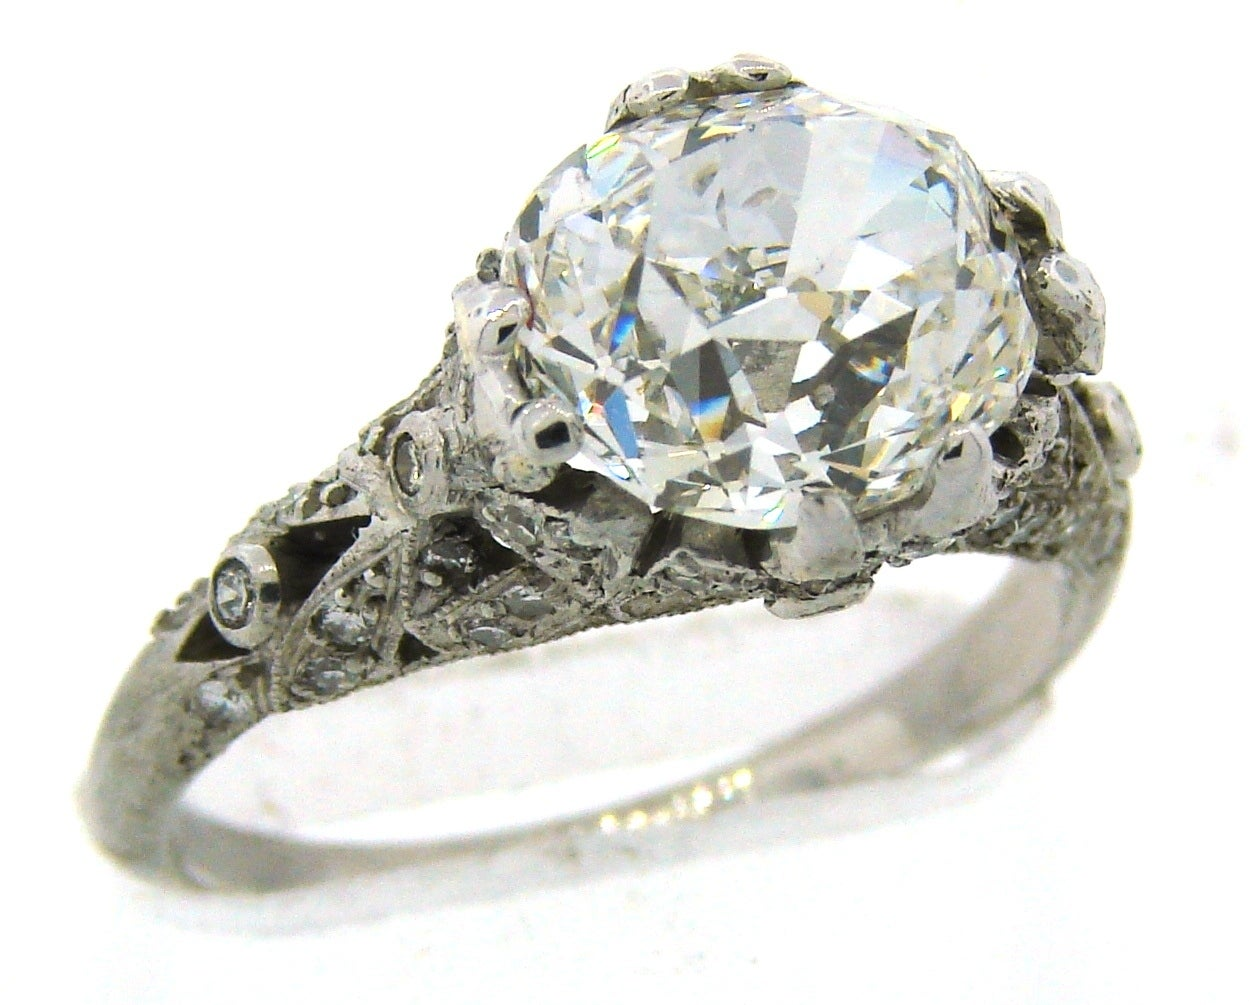 3.02 Carat GIA Cert Cushion Cut Diamond Platinum Engagement Ring circa 1920s 2